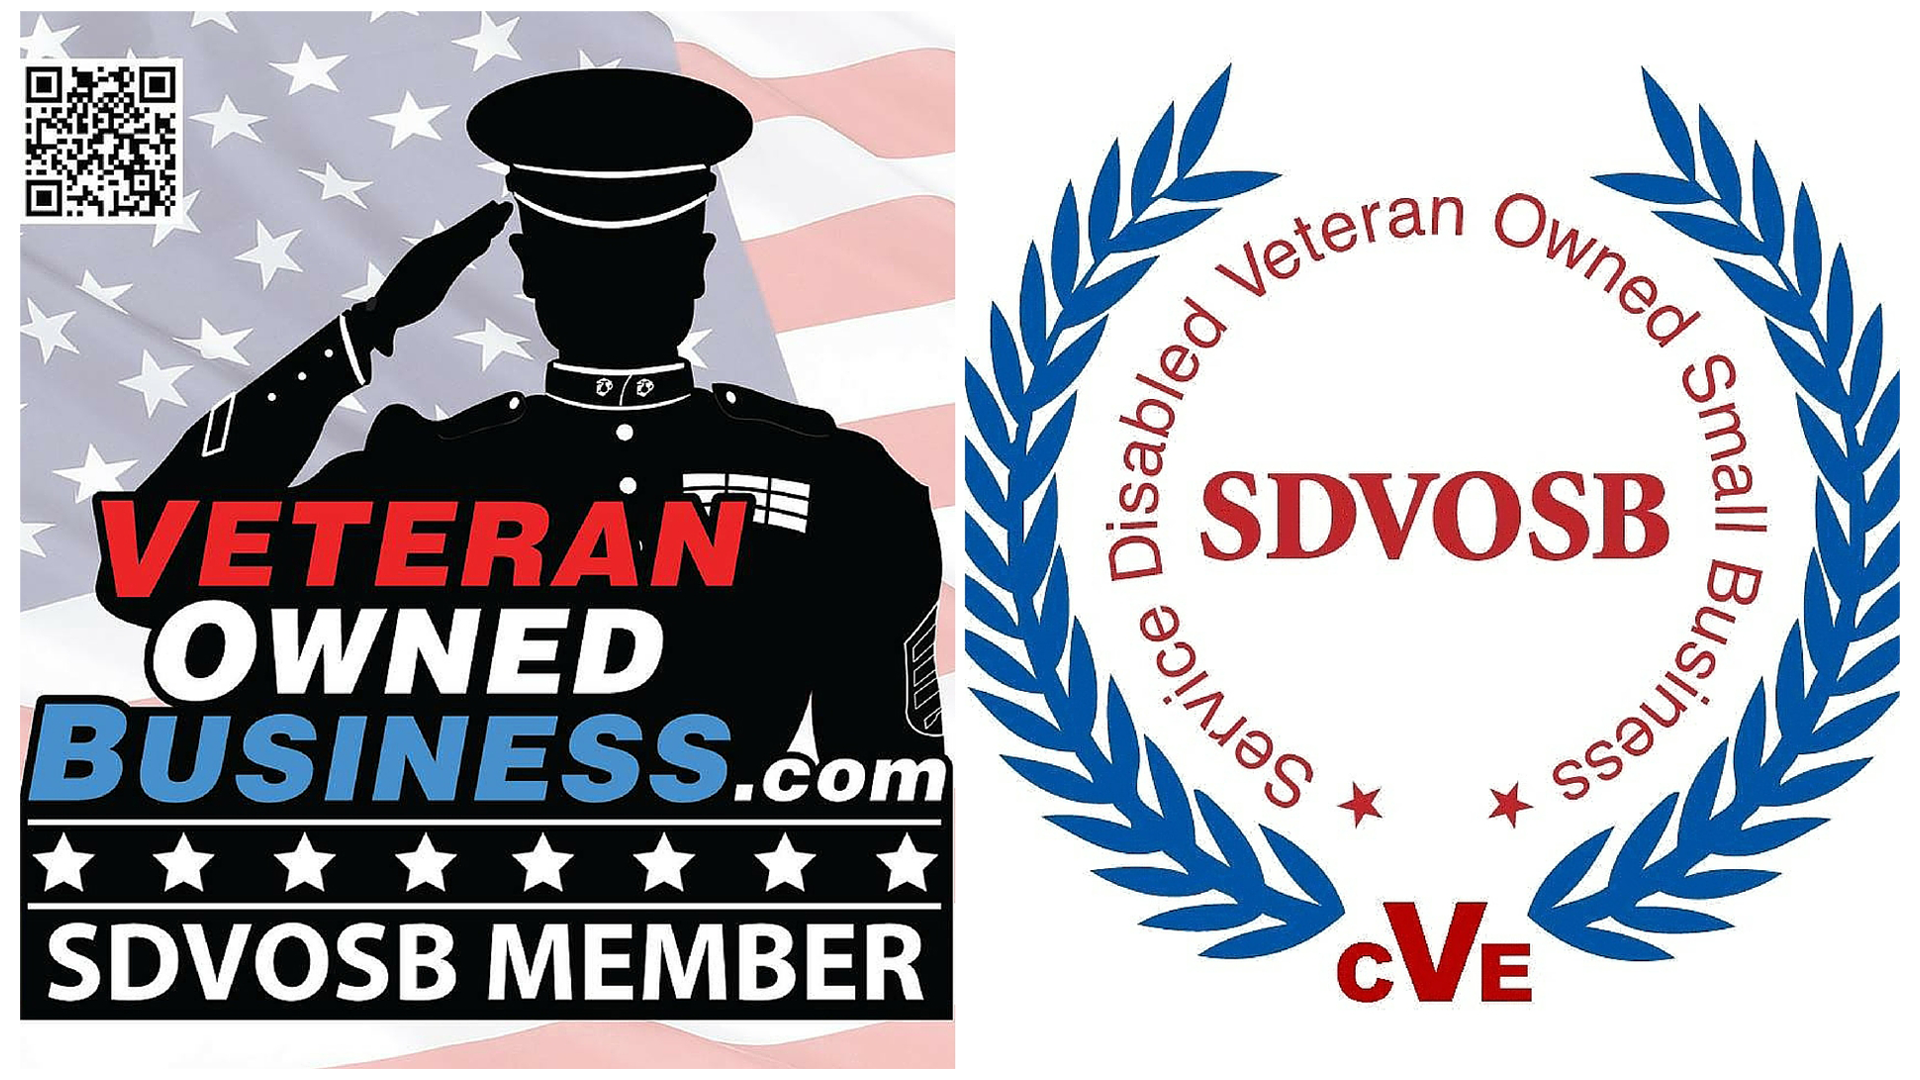 Mesmerizing-Veteran-Owned-Business-Logo-51-With-Additional-Free-Logo-Design-Online-with-Veteran-Owned-Business-Logo.jpg